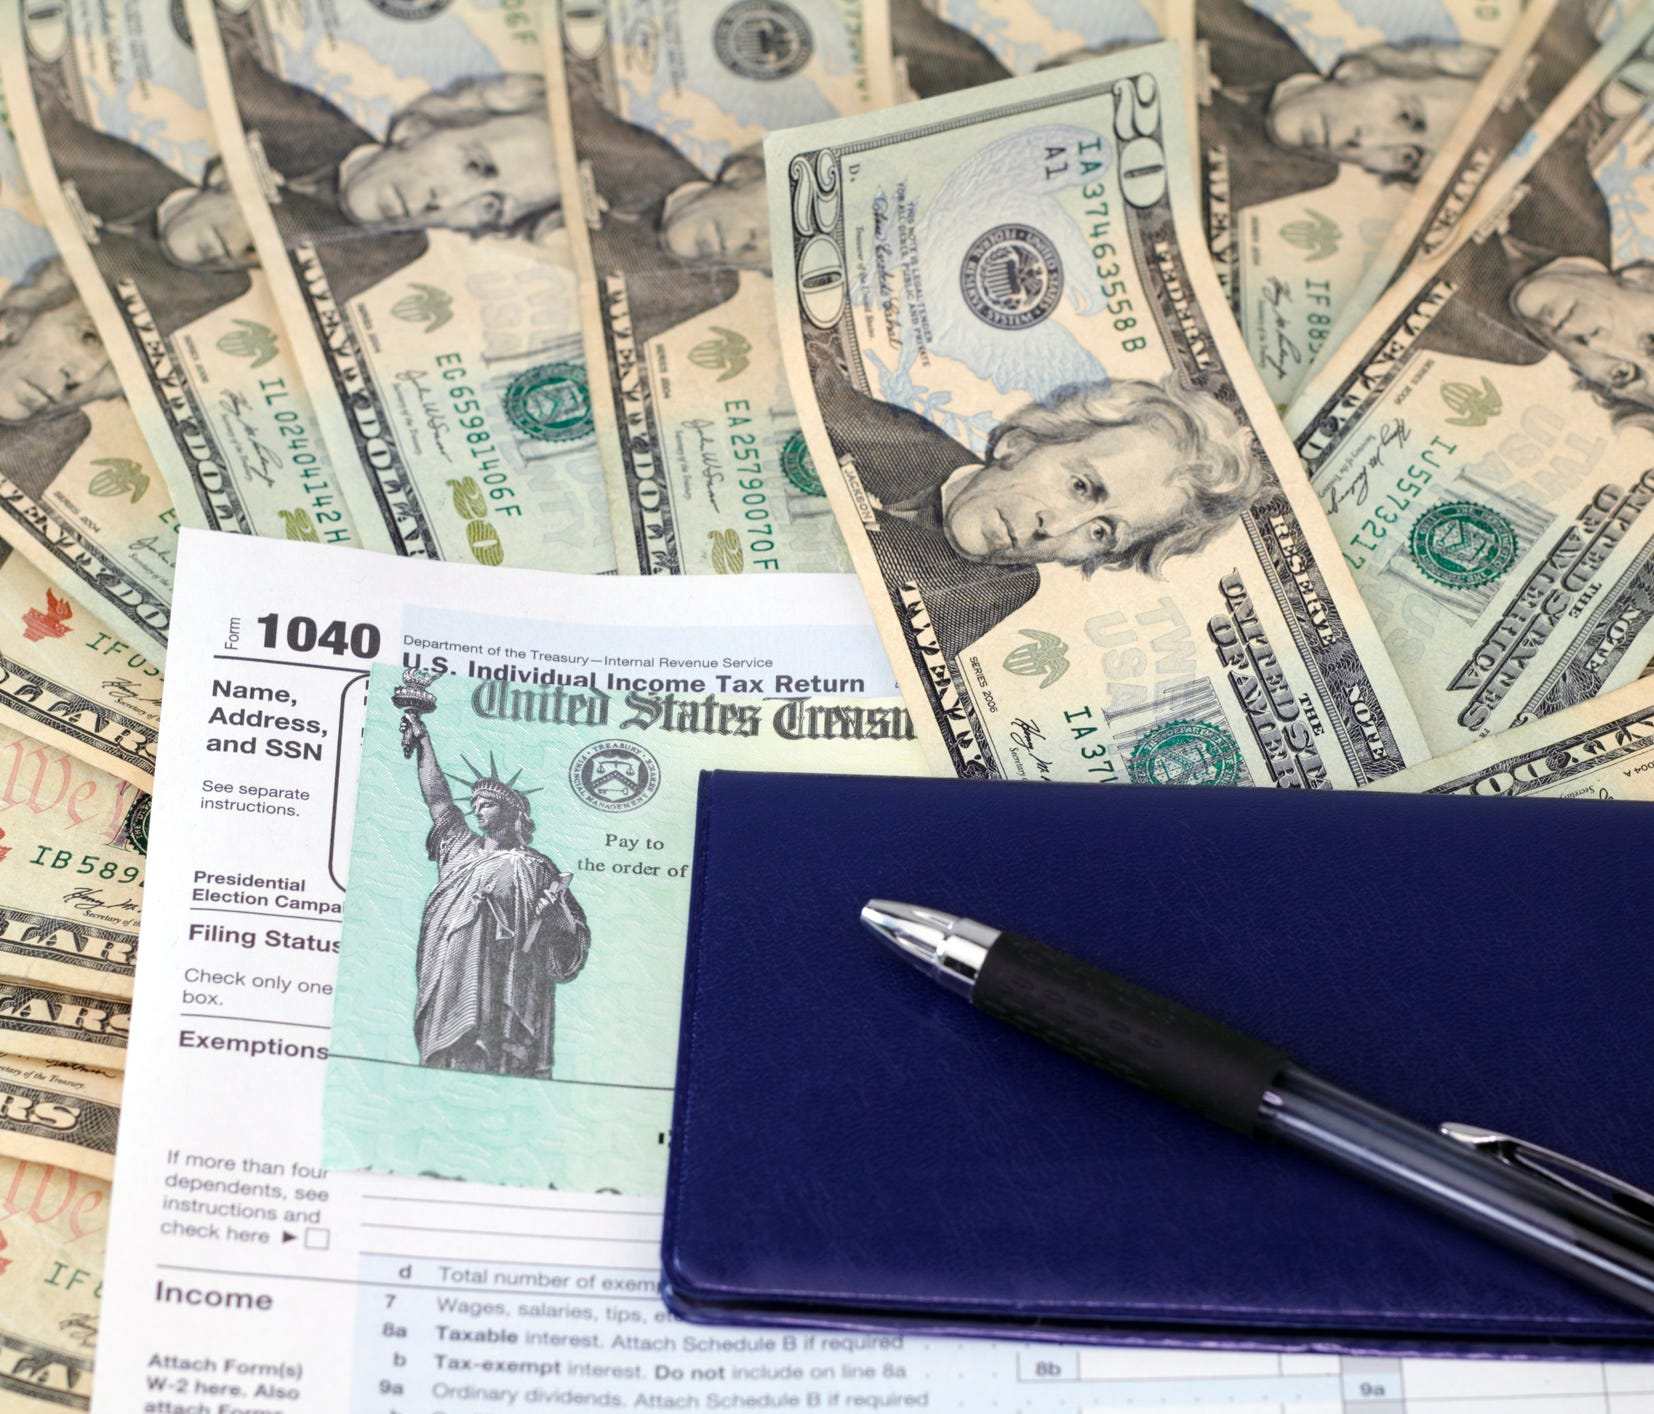 Getting a tax refund this year? Be careful on what you spend it on.